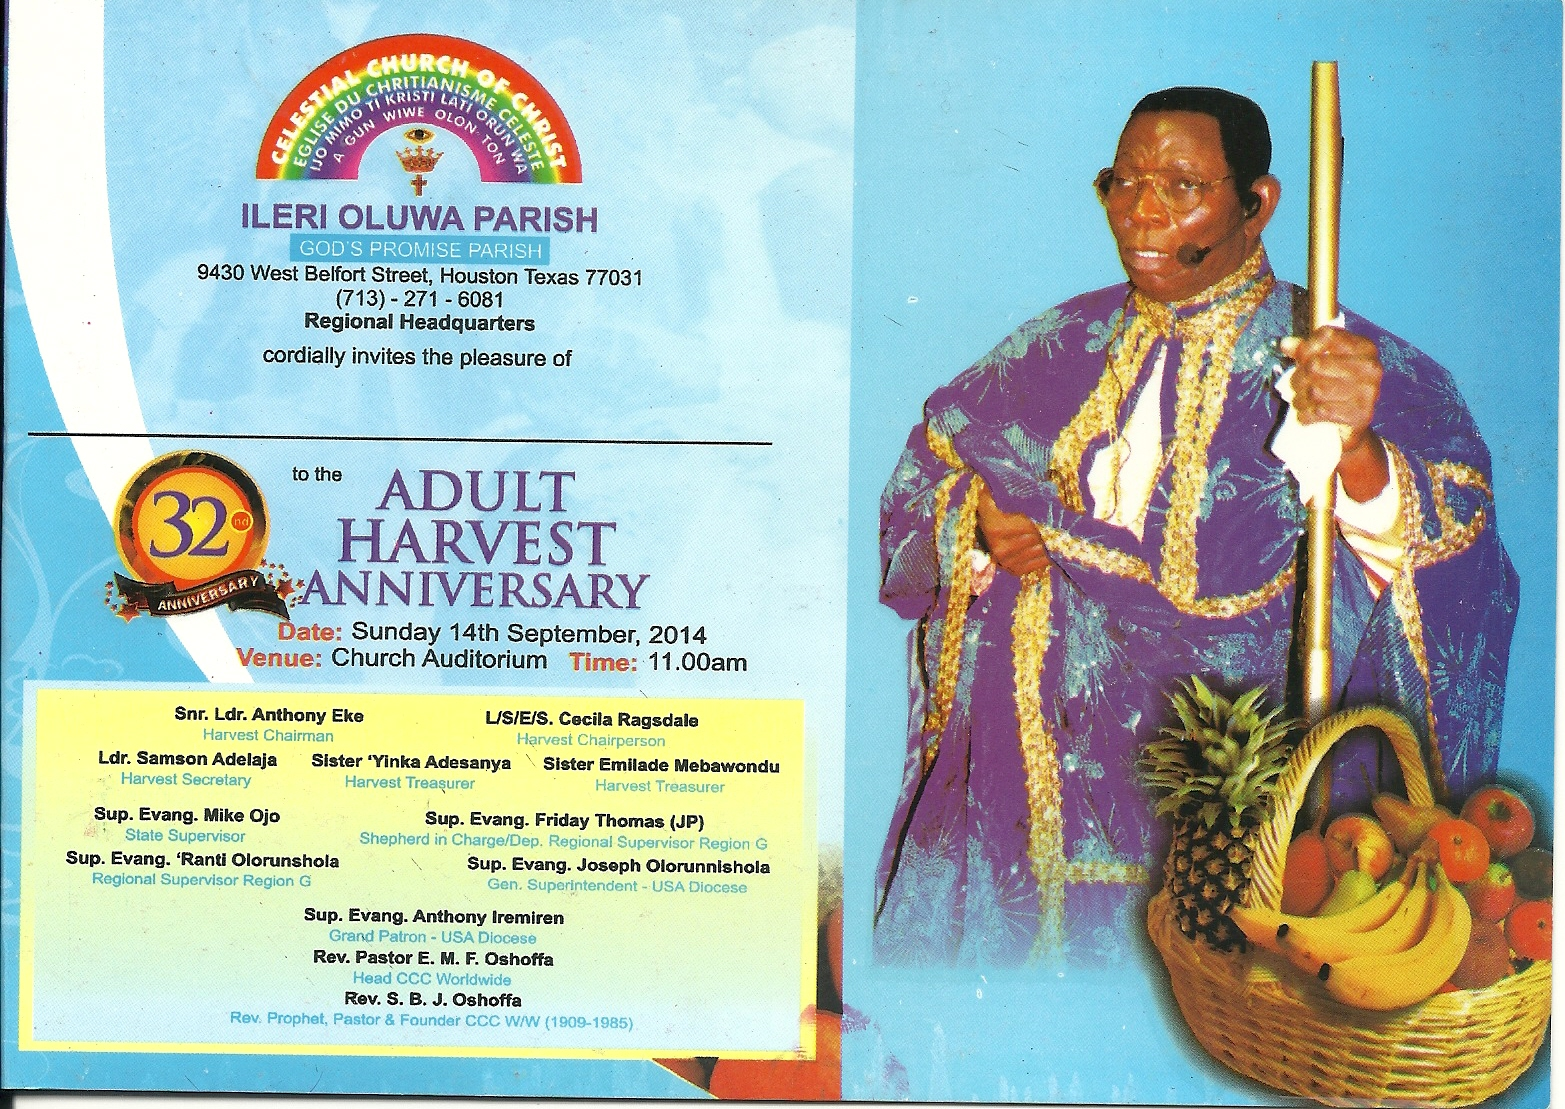 Celestial church of christ sanctuary of the lord parish los angeles ca invites you to their second annual adult harvest thanksgiving service on sunday june 8 2014 1100am prompt publicscrutiny Gallery